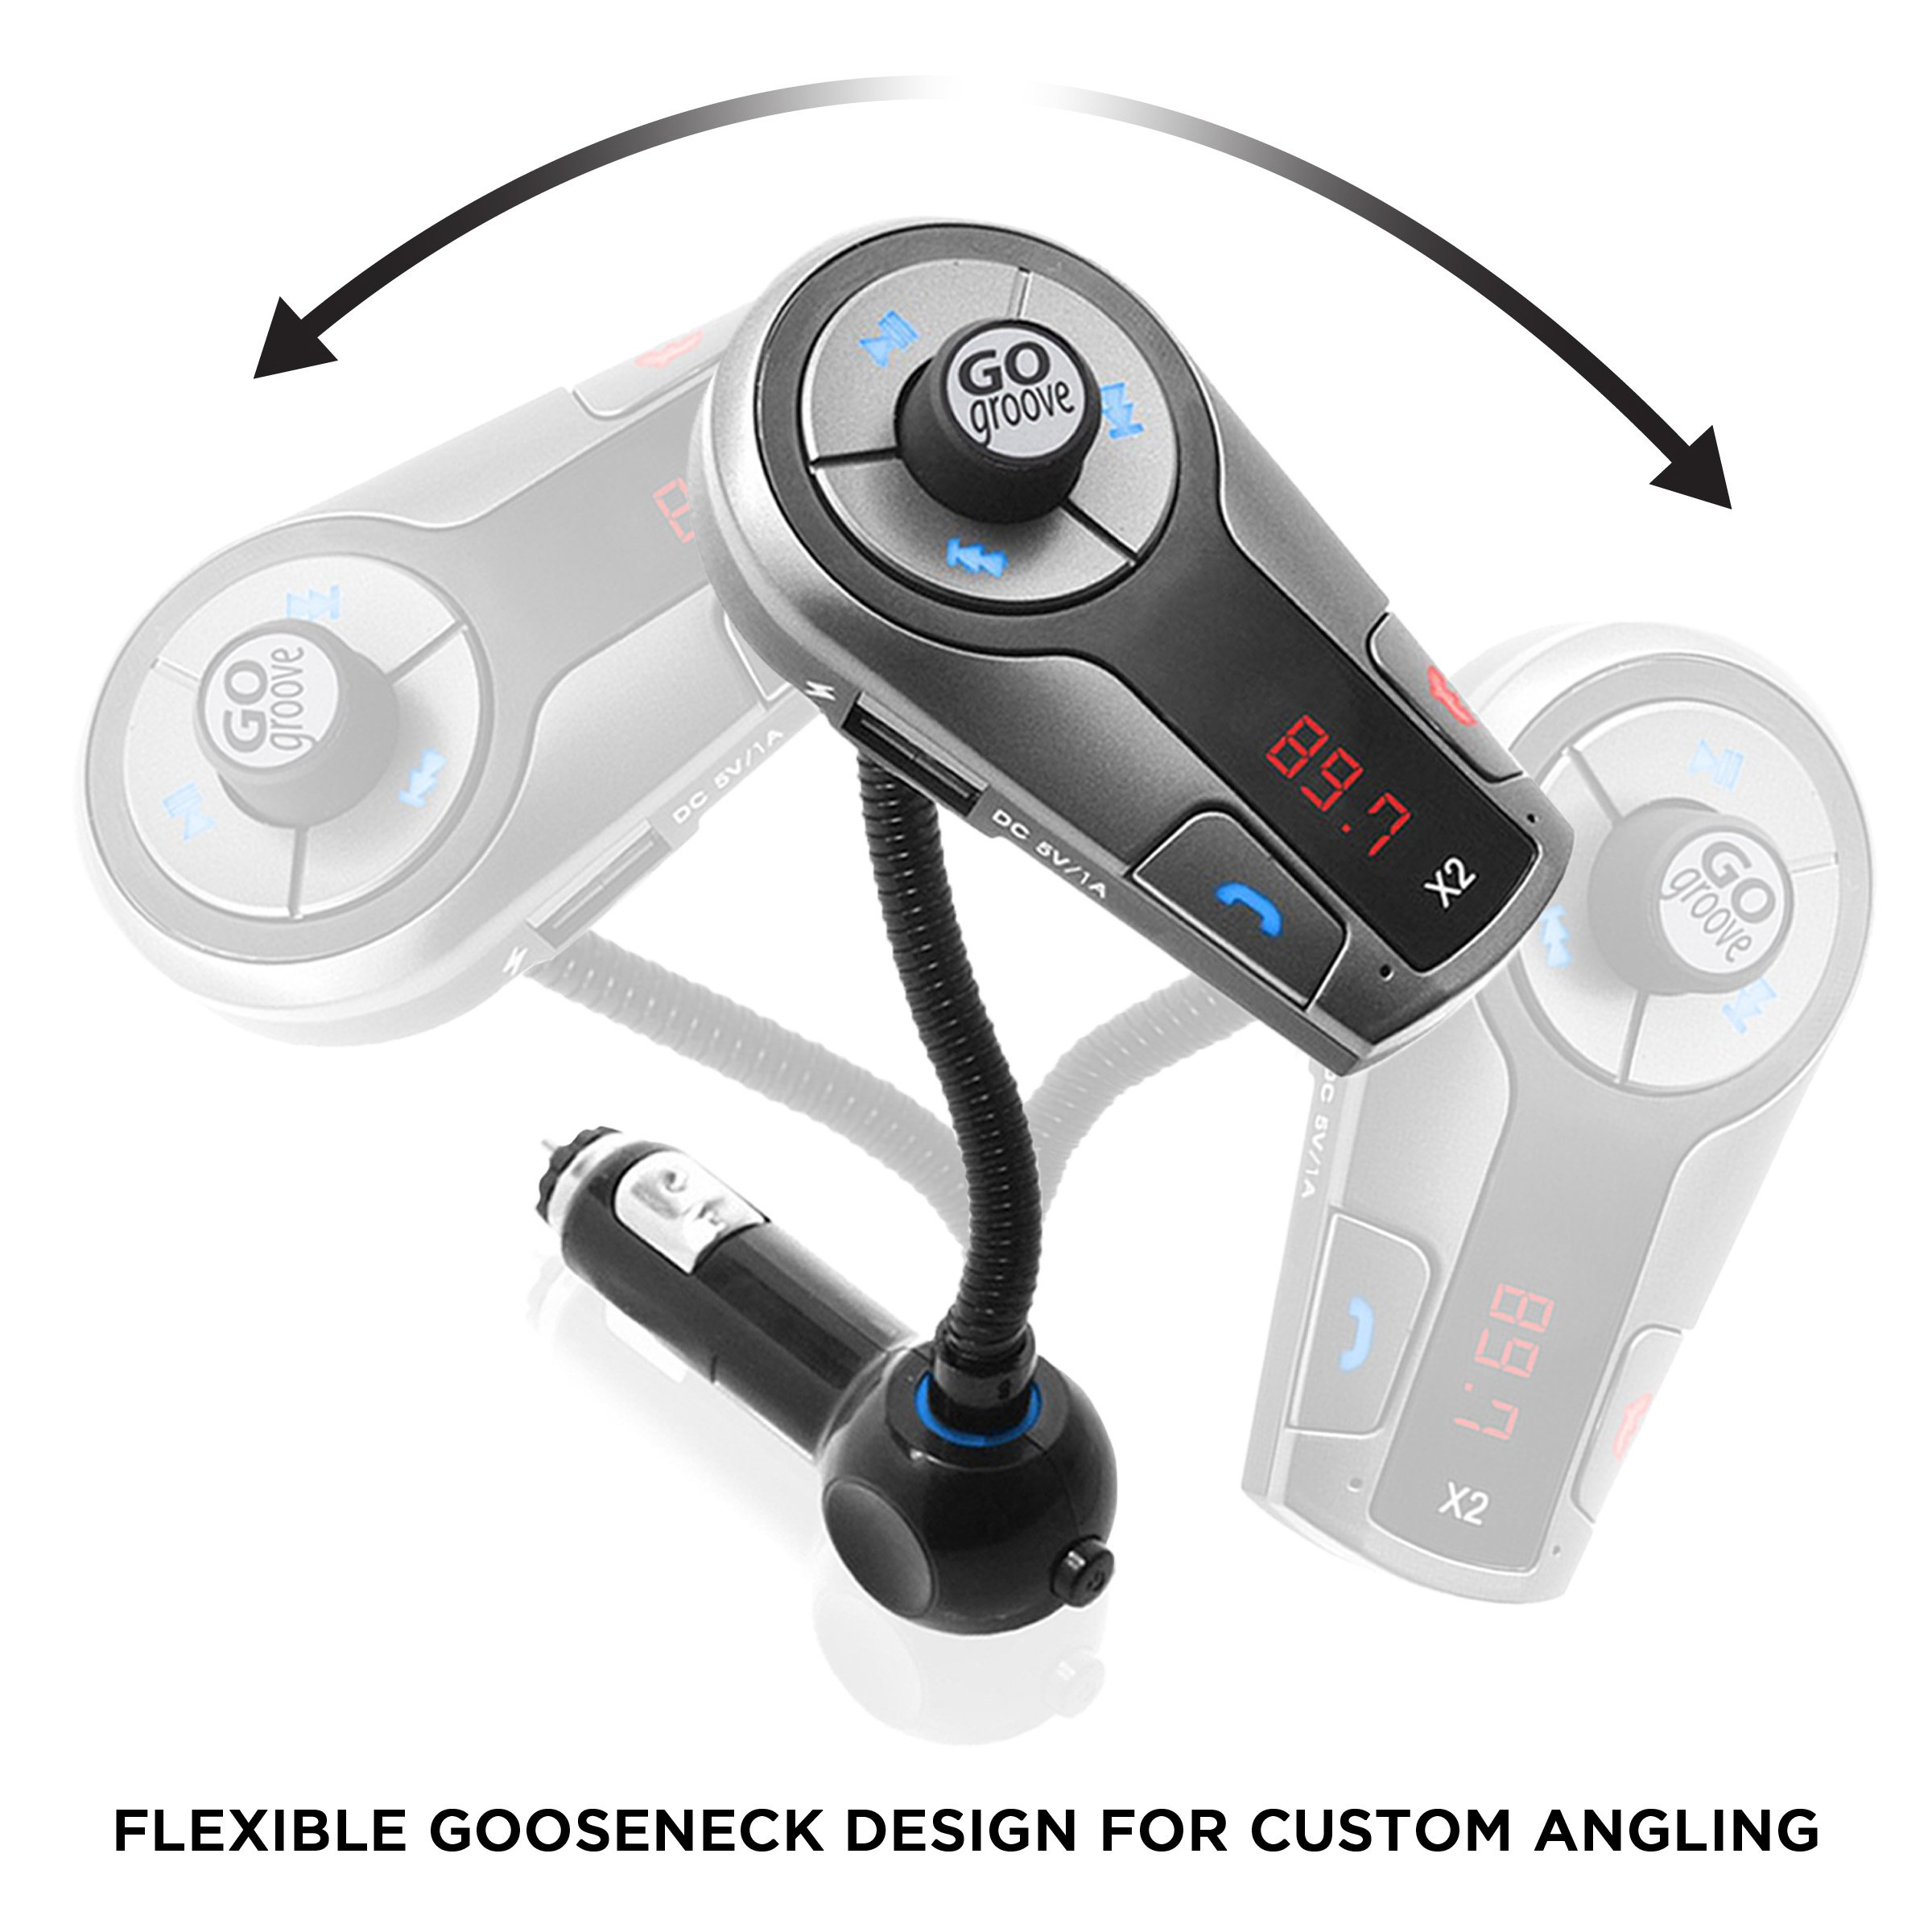 GOgroove FlexSMART X2 Bluetooth FM Transmitter for Car Radio w/USB Charging, Multipoint, Music Controls, Hands Free Microphone for iPhone, Android by GOgroove (Image #7)